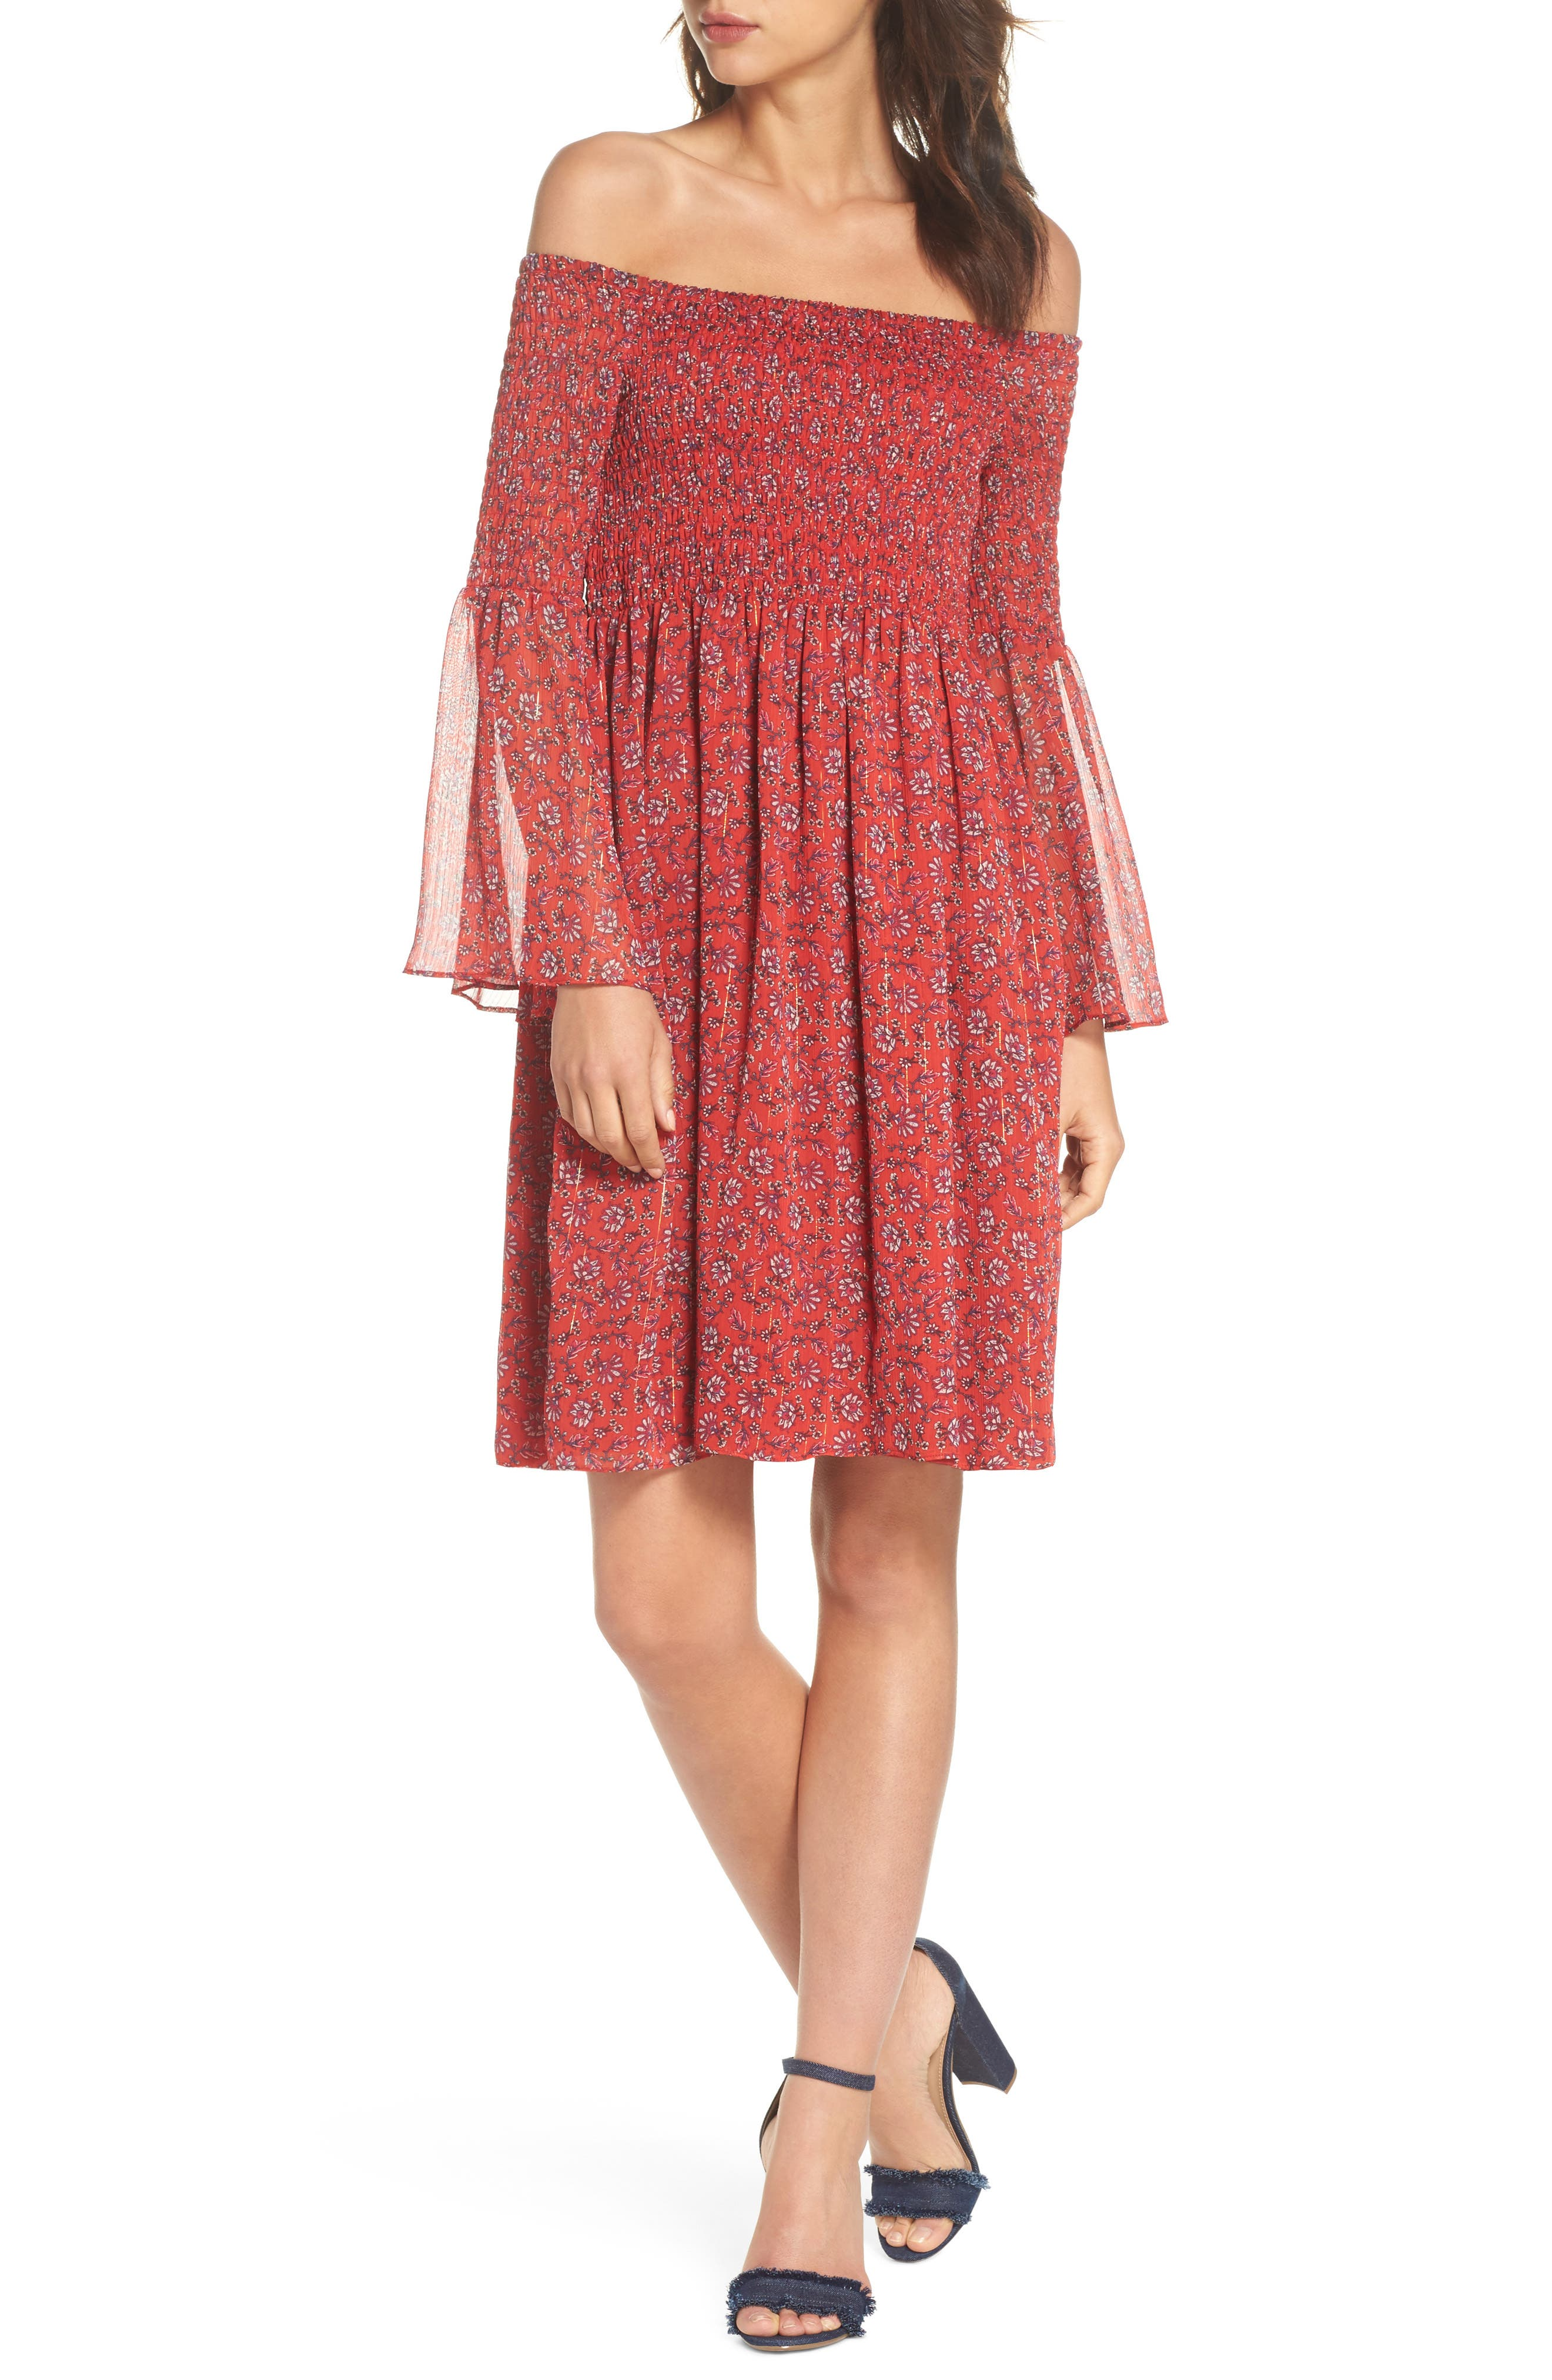 Off the Shoulder Babydoll Dress,                             Main thumbnail 1, color,                             Cayenne